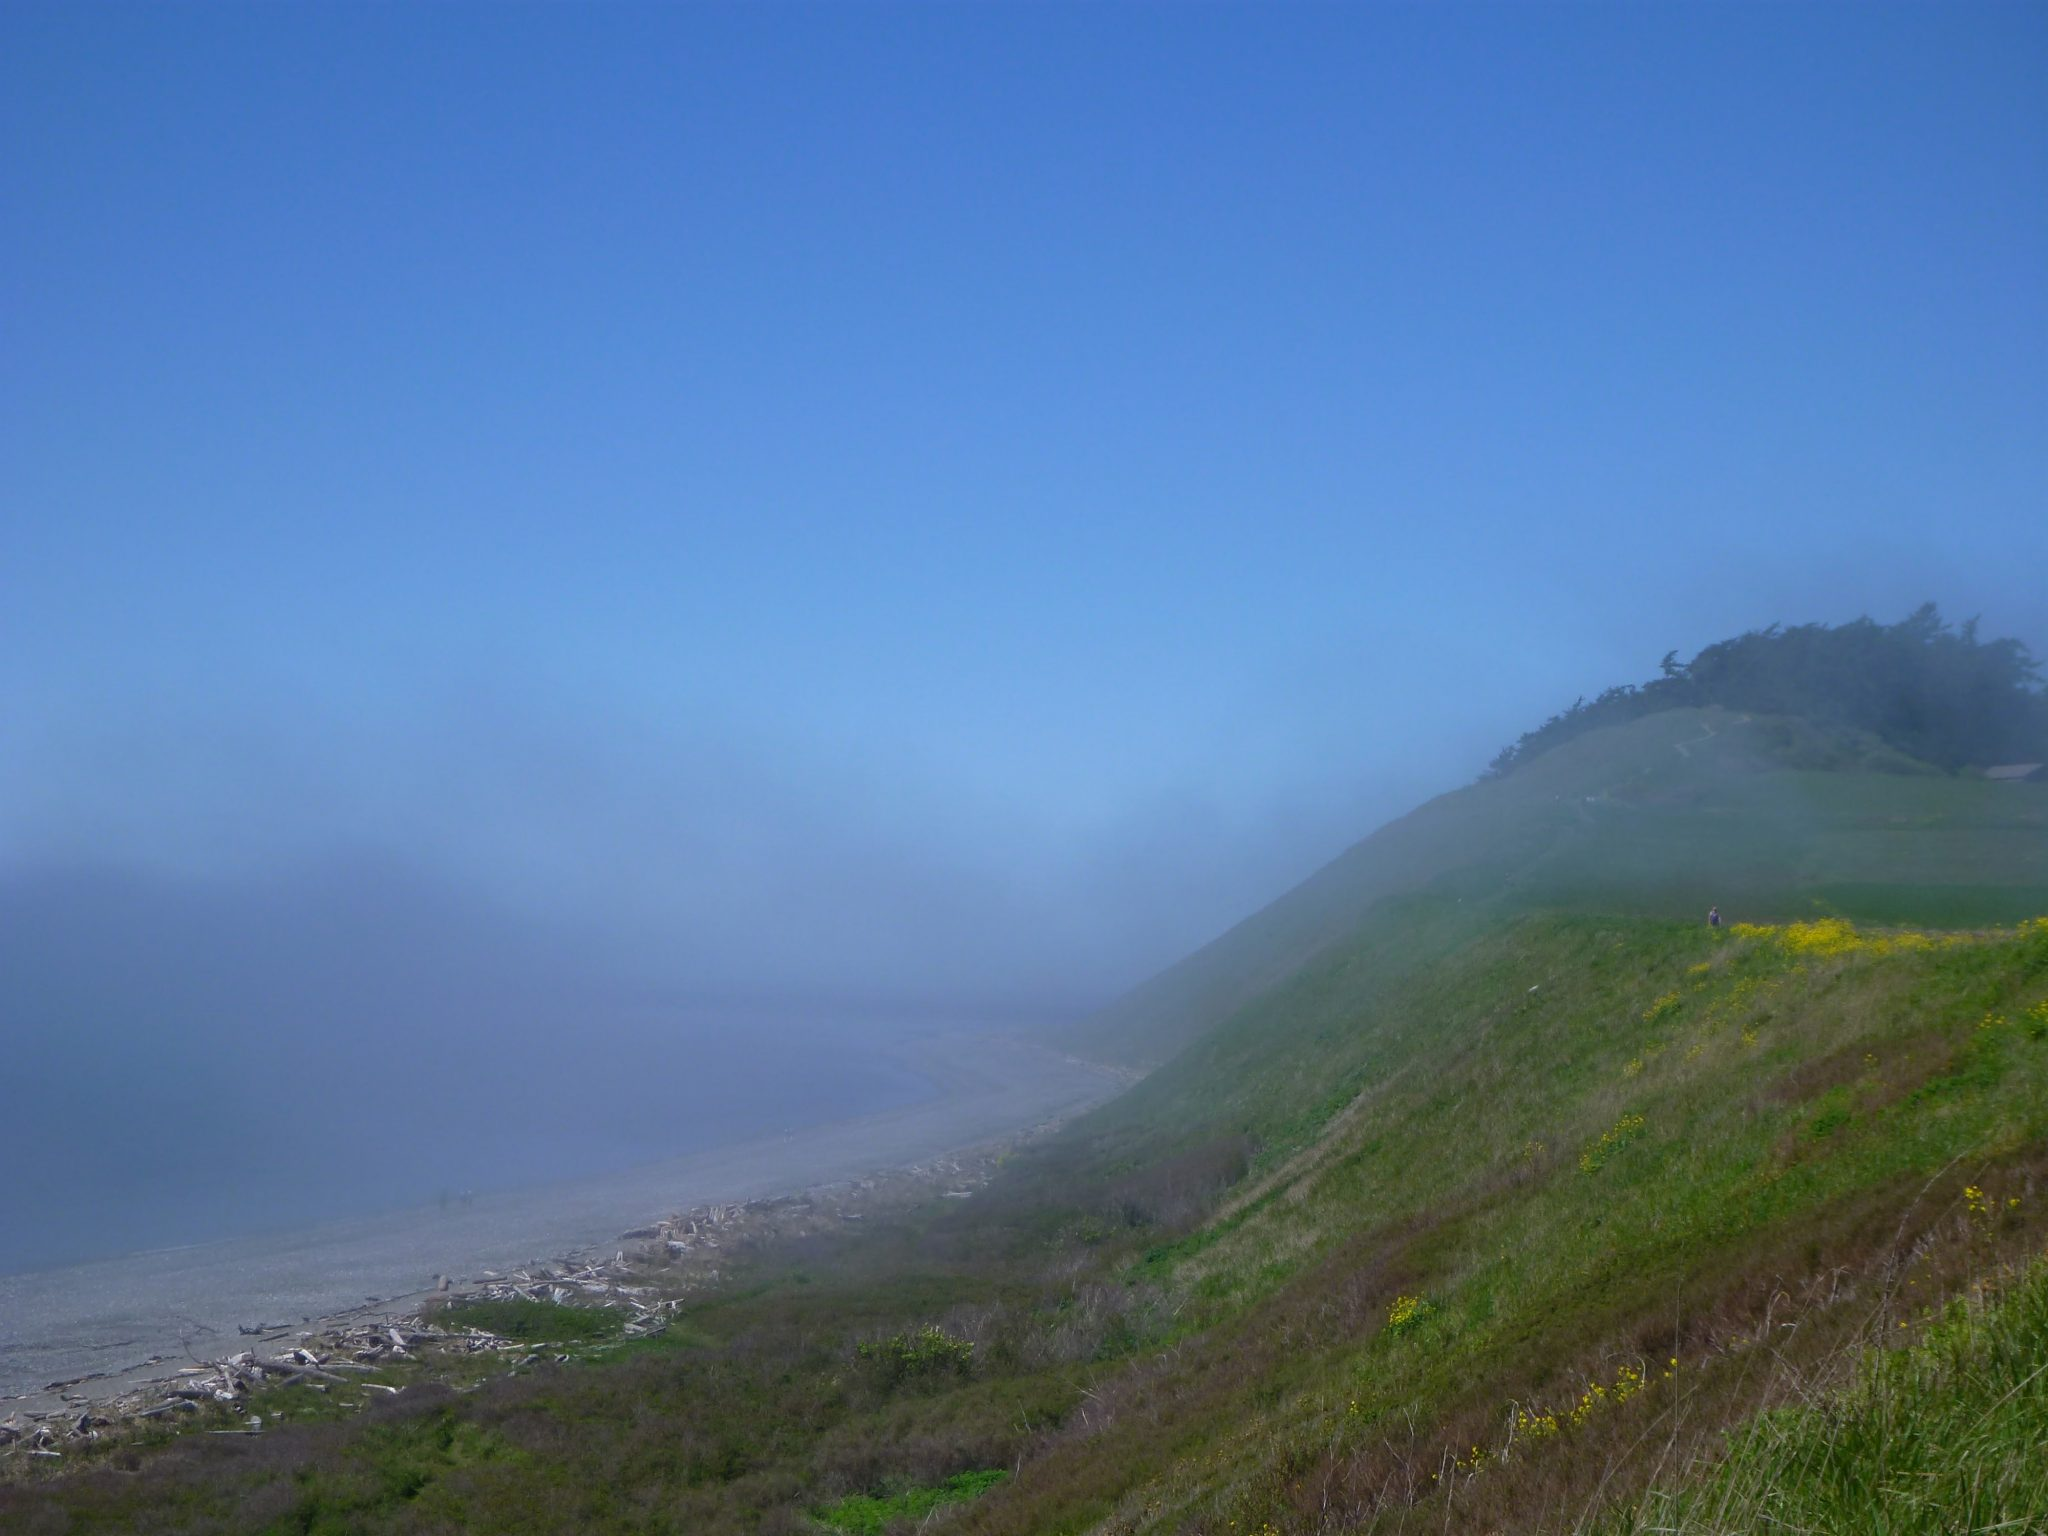 A bluff with trees and yellow flowers on the right and a beach with driftwood on the left. It's a sunny day with blue sky and there is fog rolling across the water